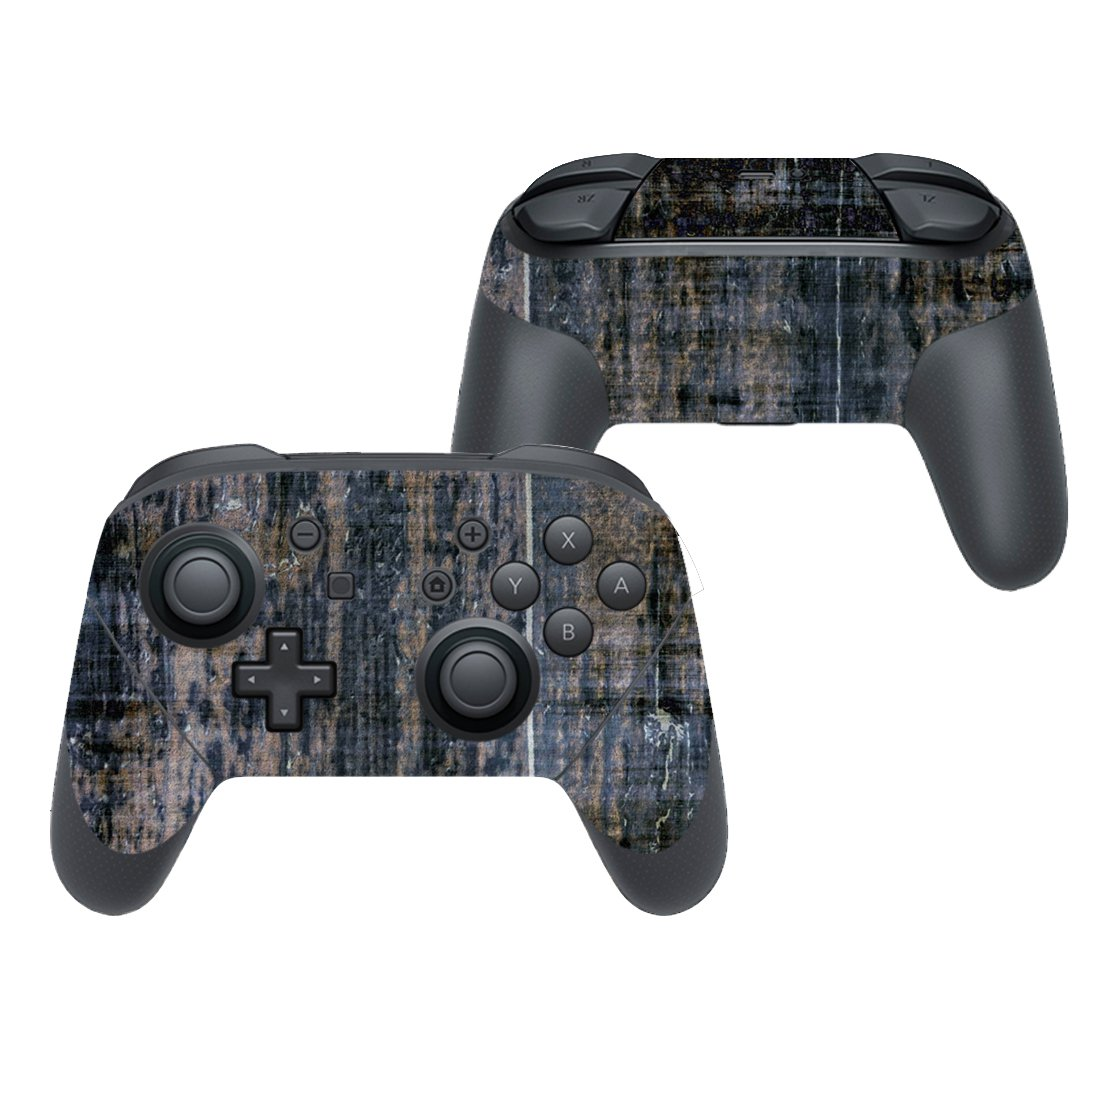 Blurry wallpaper decal for Nintendo switch controller pro sticker skin